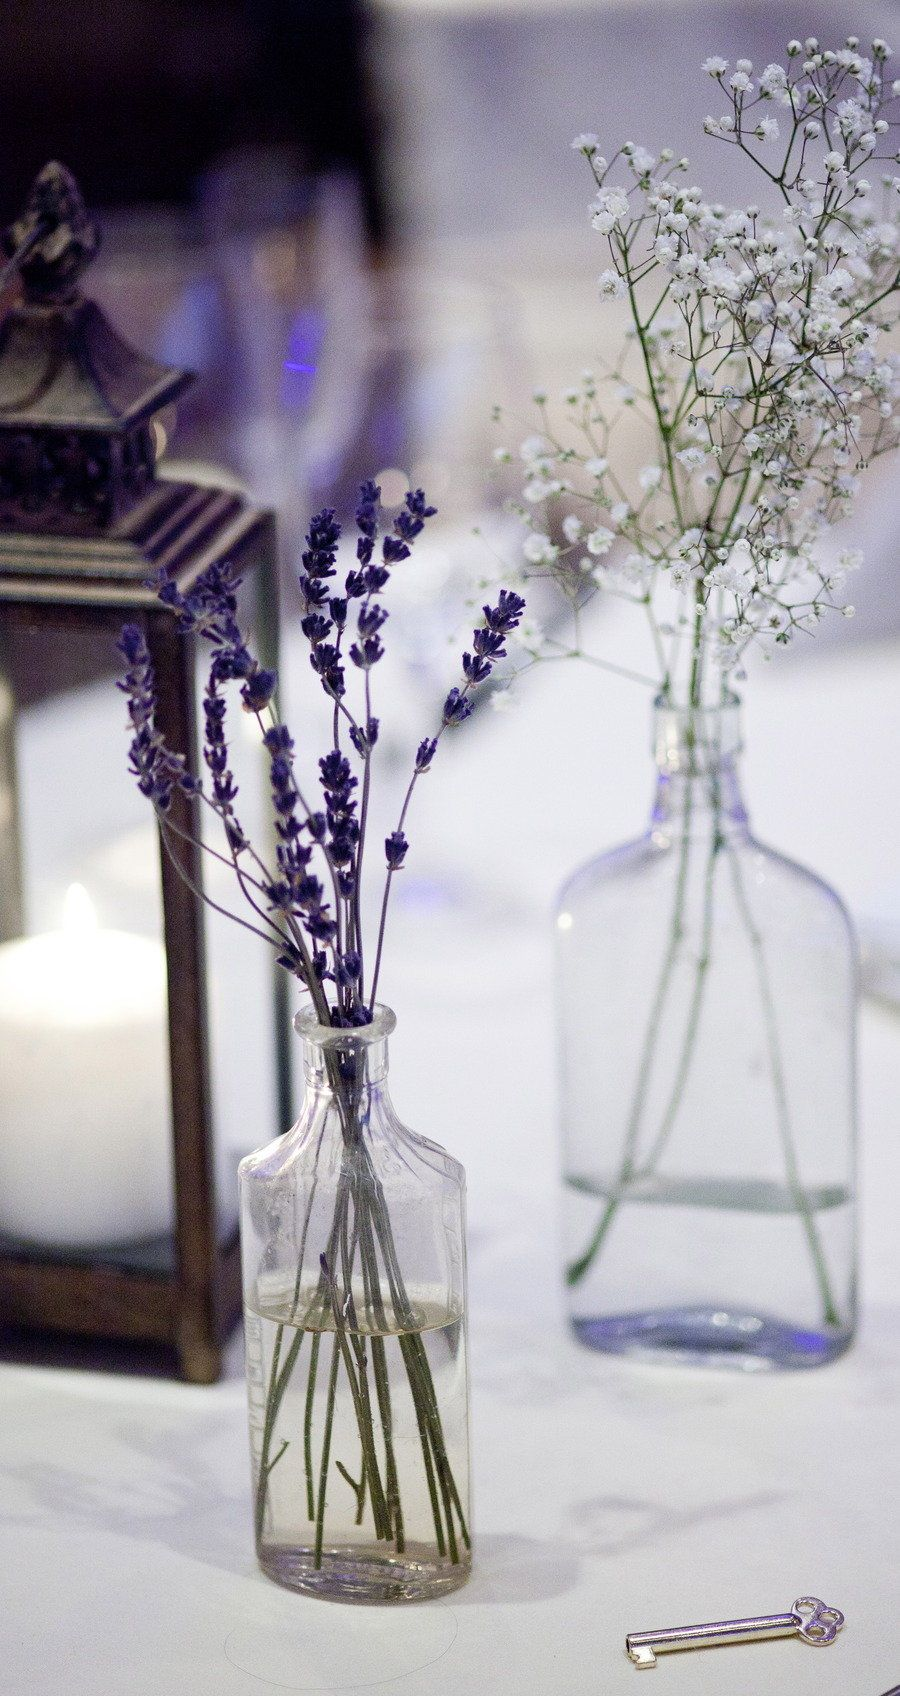 Crescent Beach Club Wedding by DM Events Planning & Design is part of Lavender wedding theme - When it comes to throwing a stopyouinyourtracks, swoonworthy affair, the talented team at DM Events Planning & Design never fails to seriously deliver the goods  And today's stunning Bayville